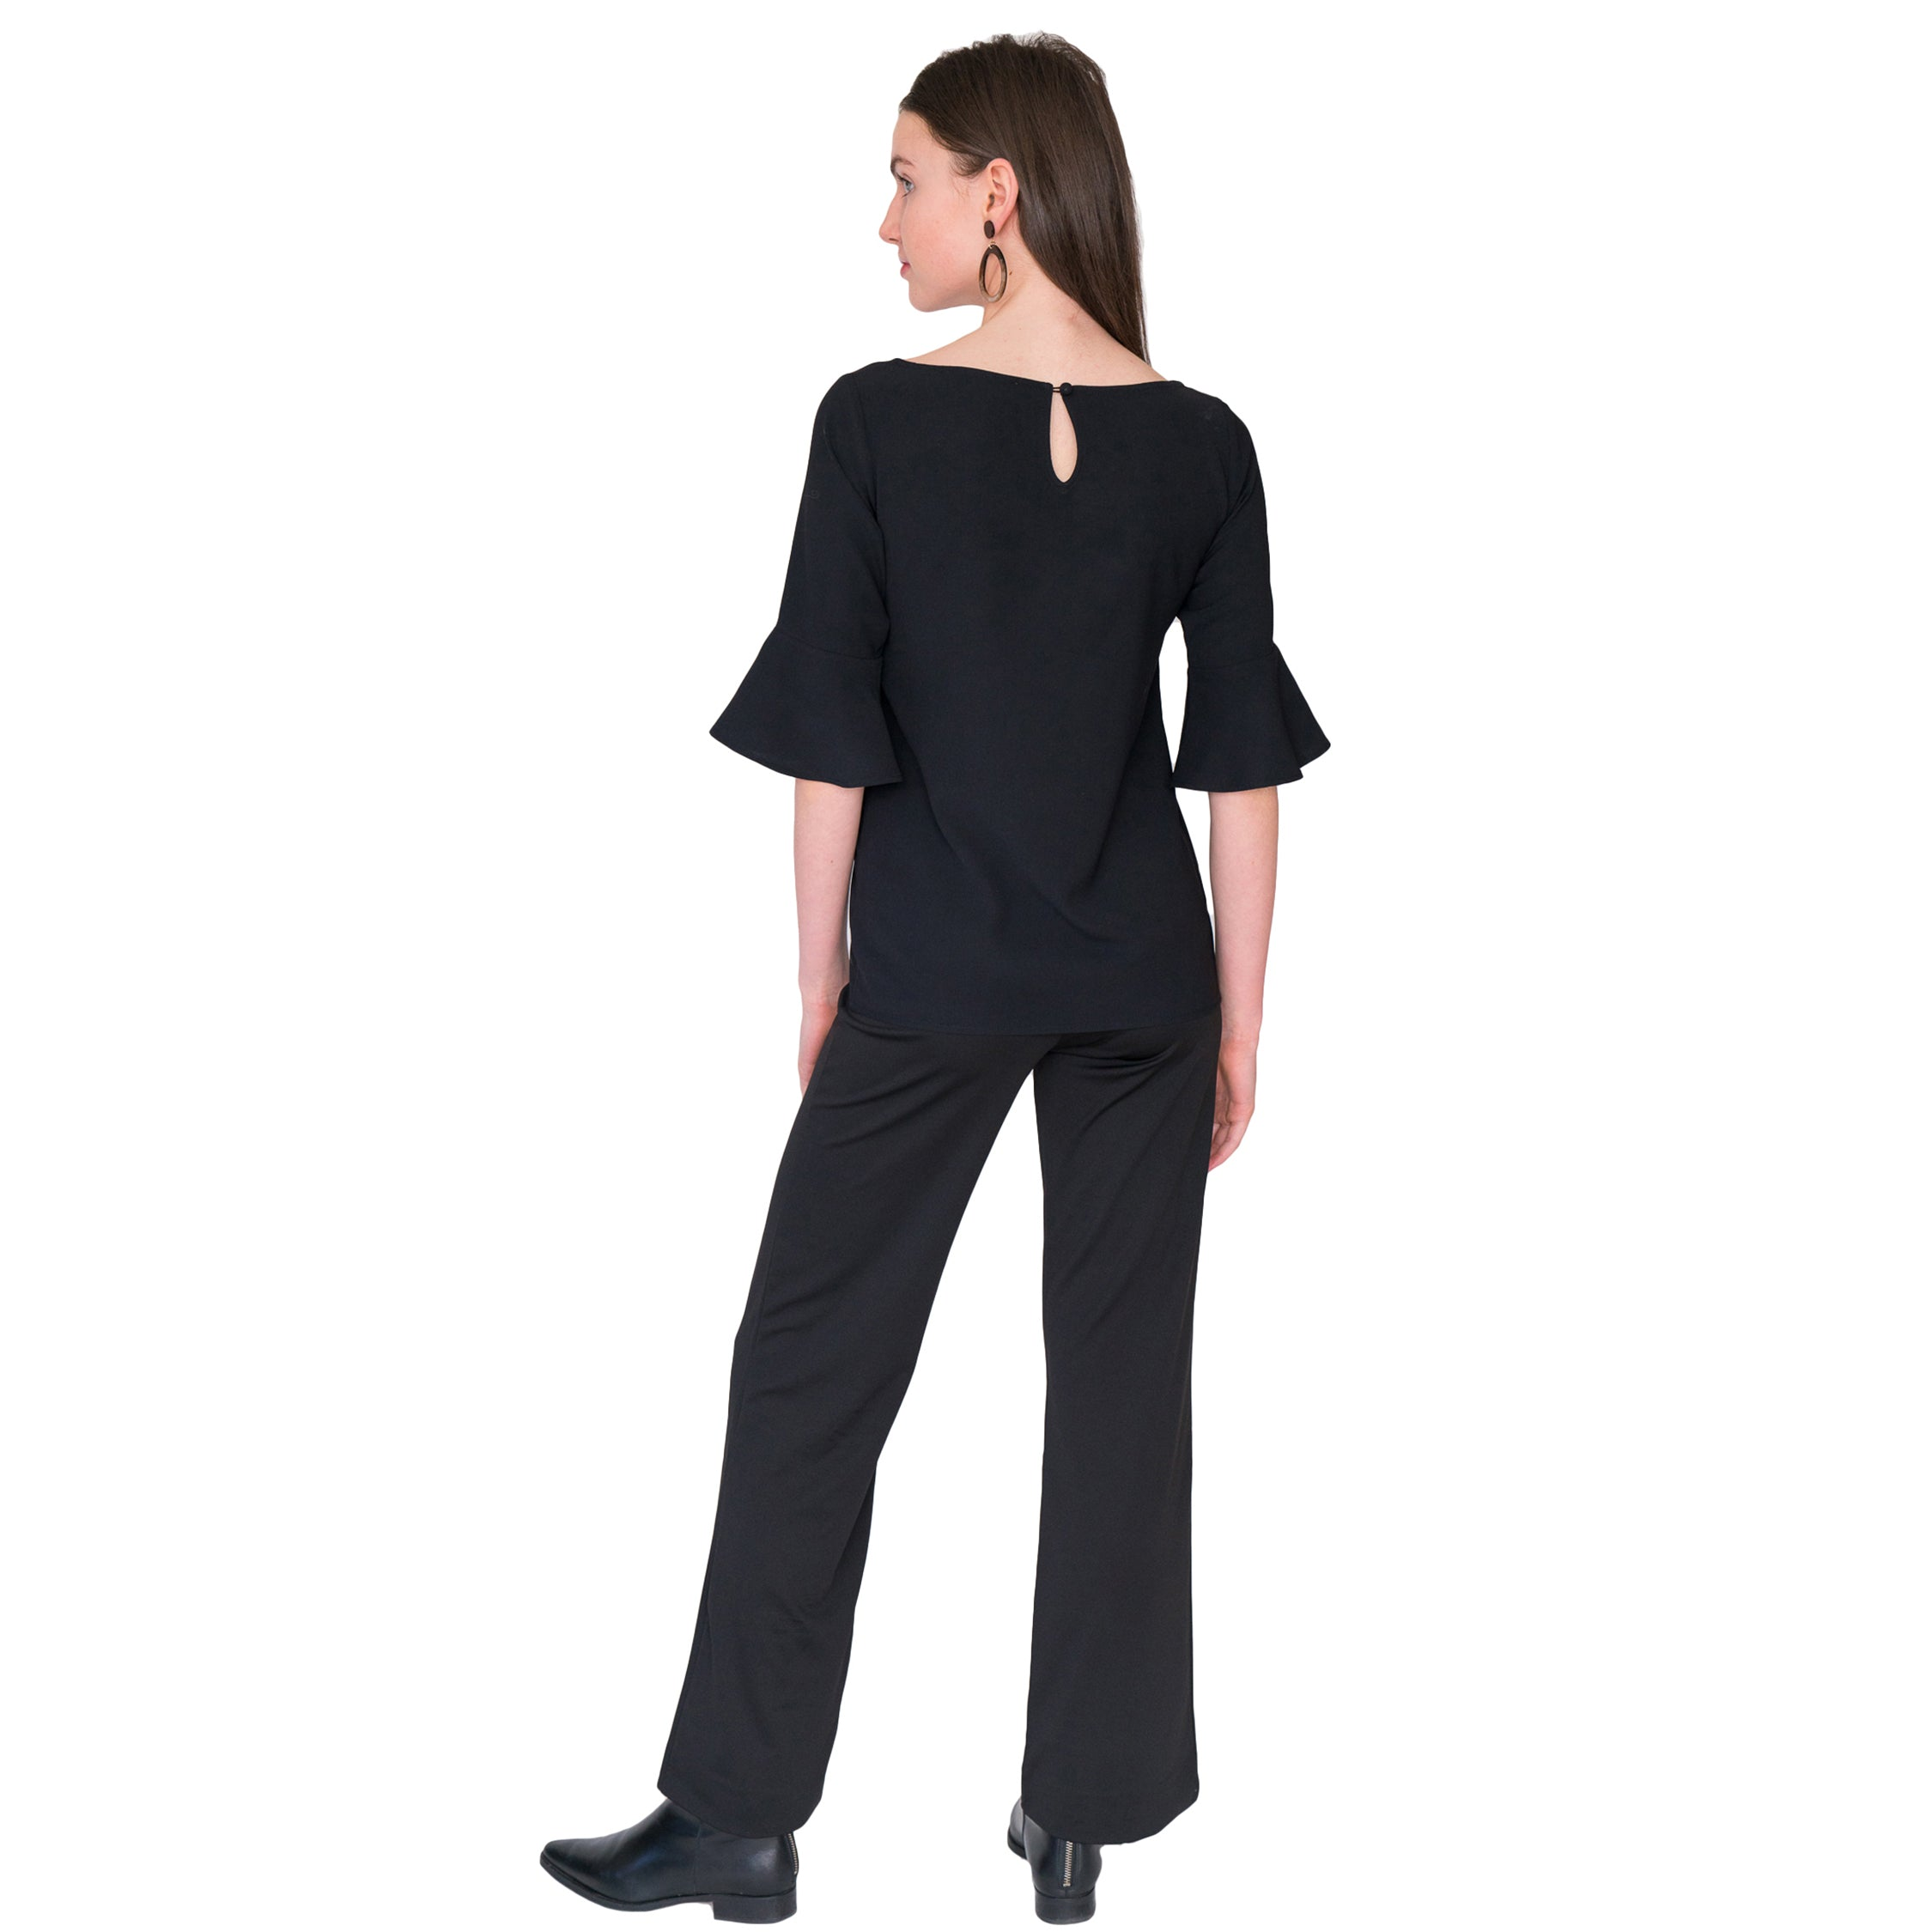 Toby Palazzo Pant in Solid Black - Elizabeth Ackerman New York